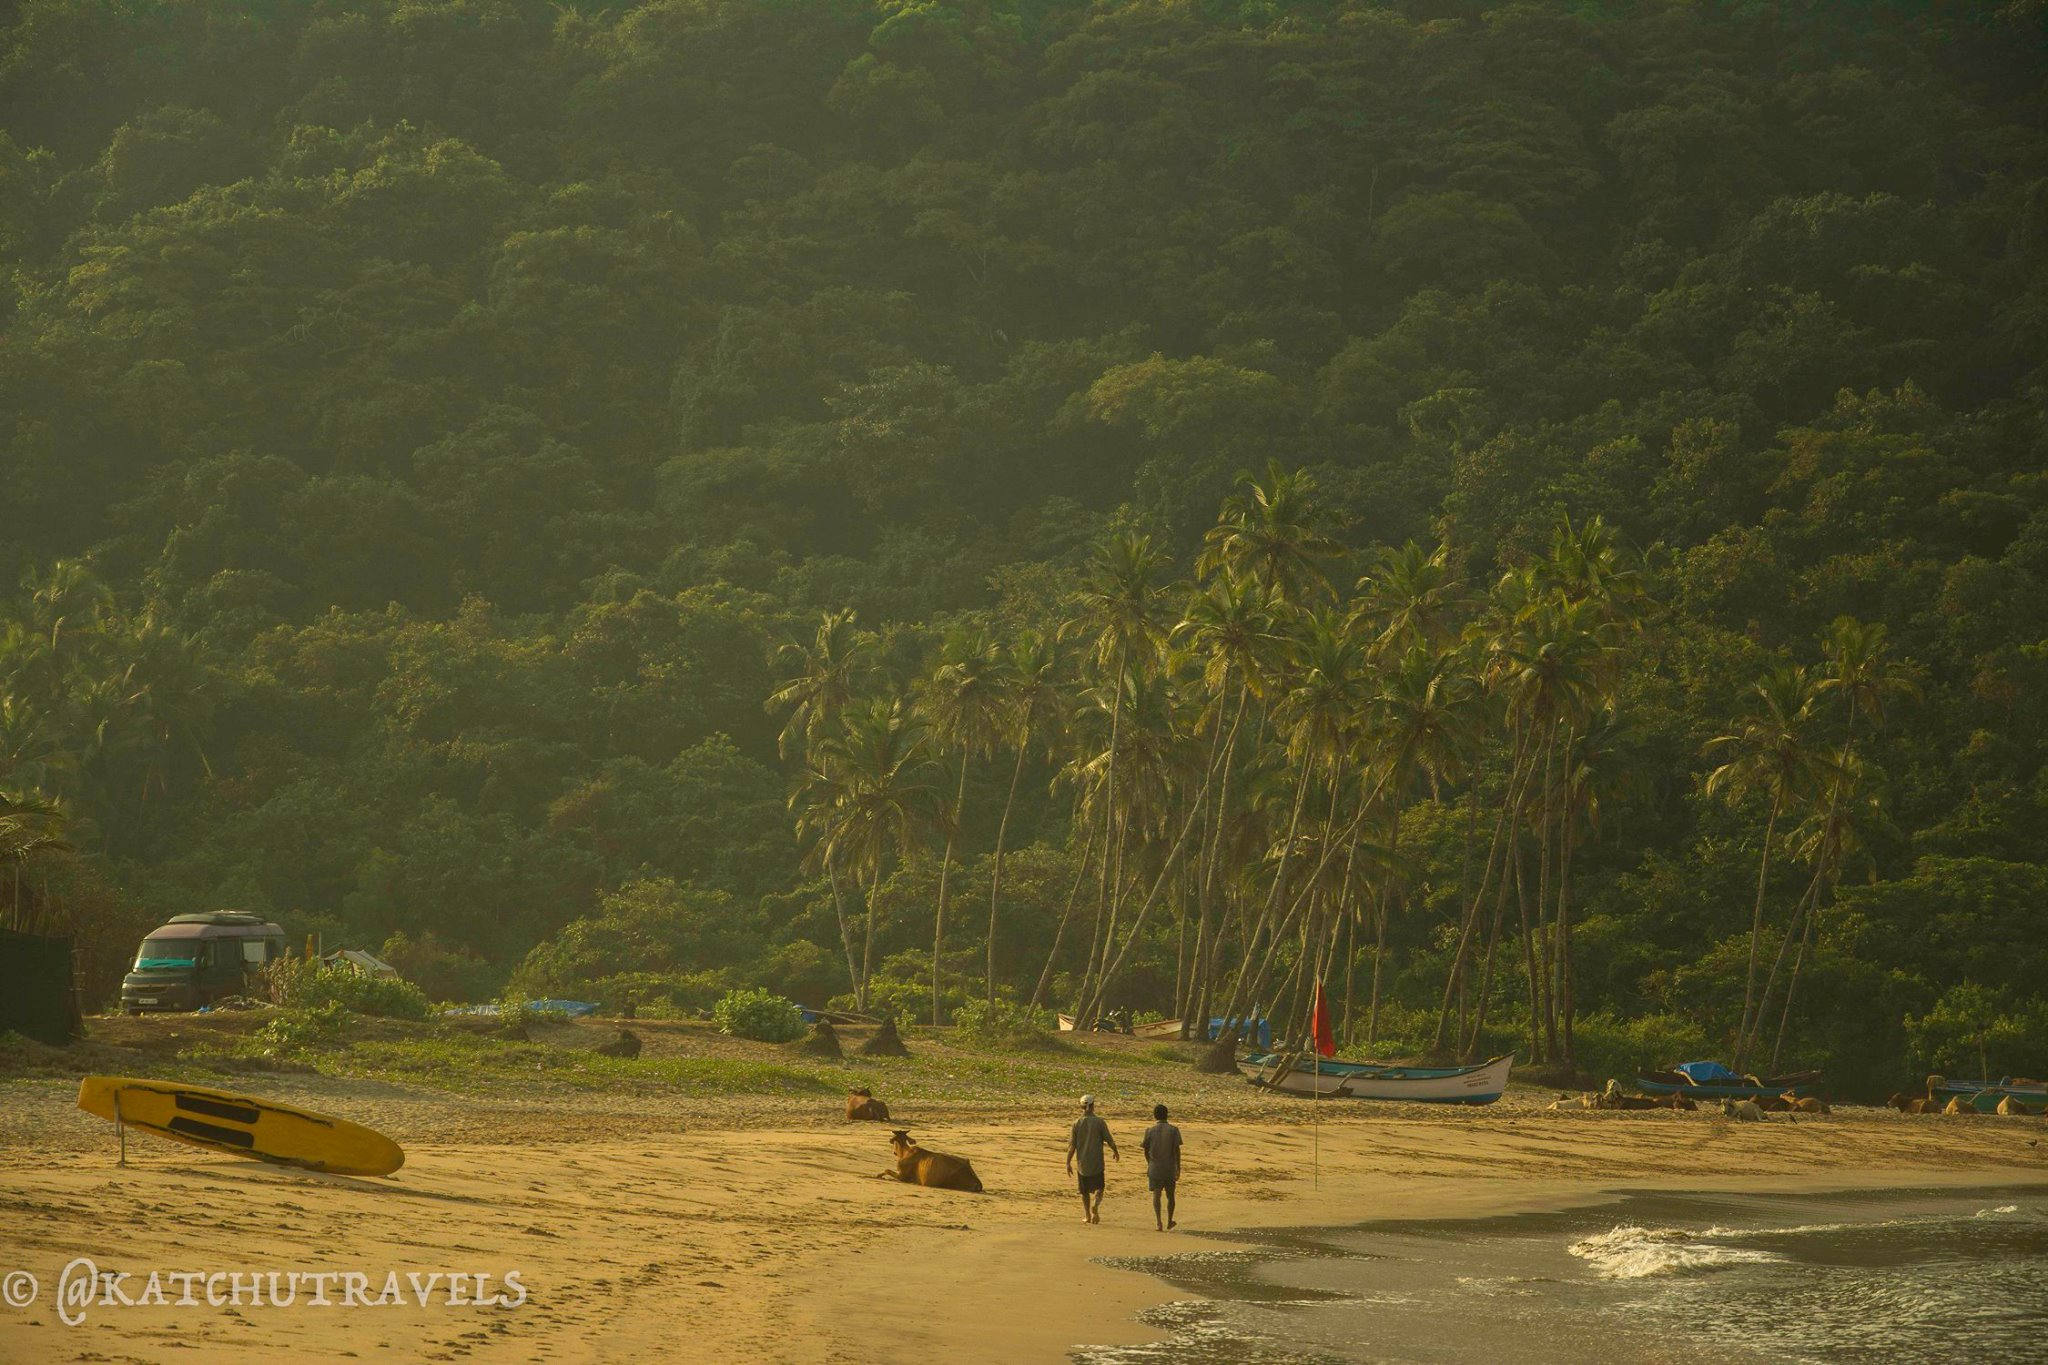 Taking a sunrise walk along the expanse of Agonda Beach in Goa